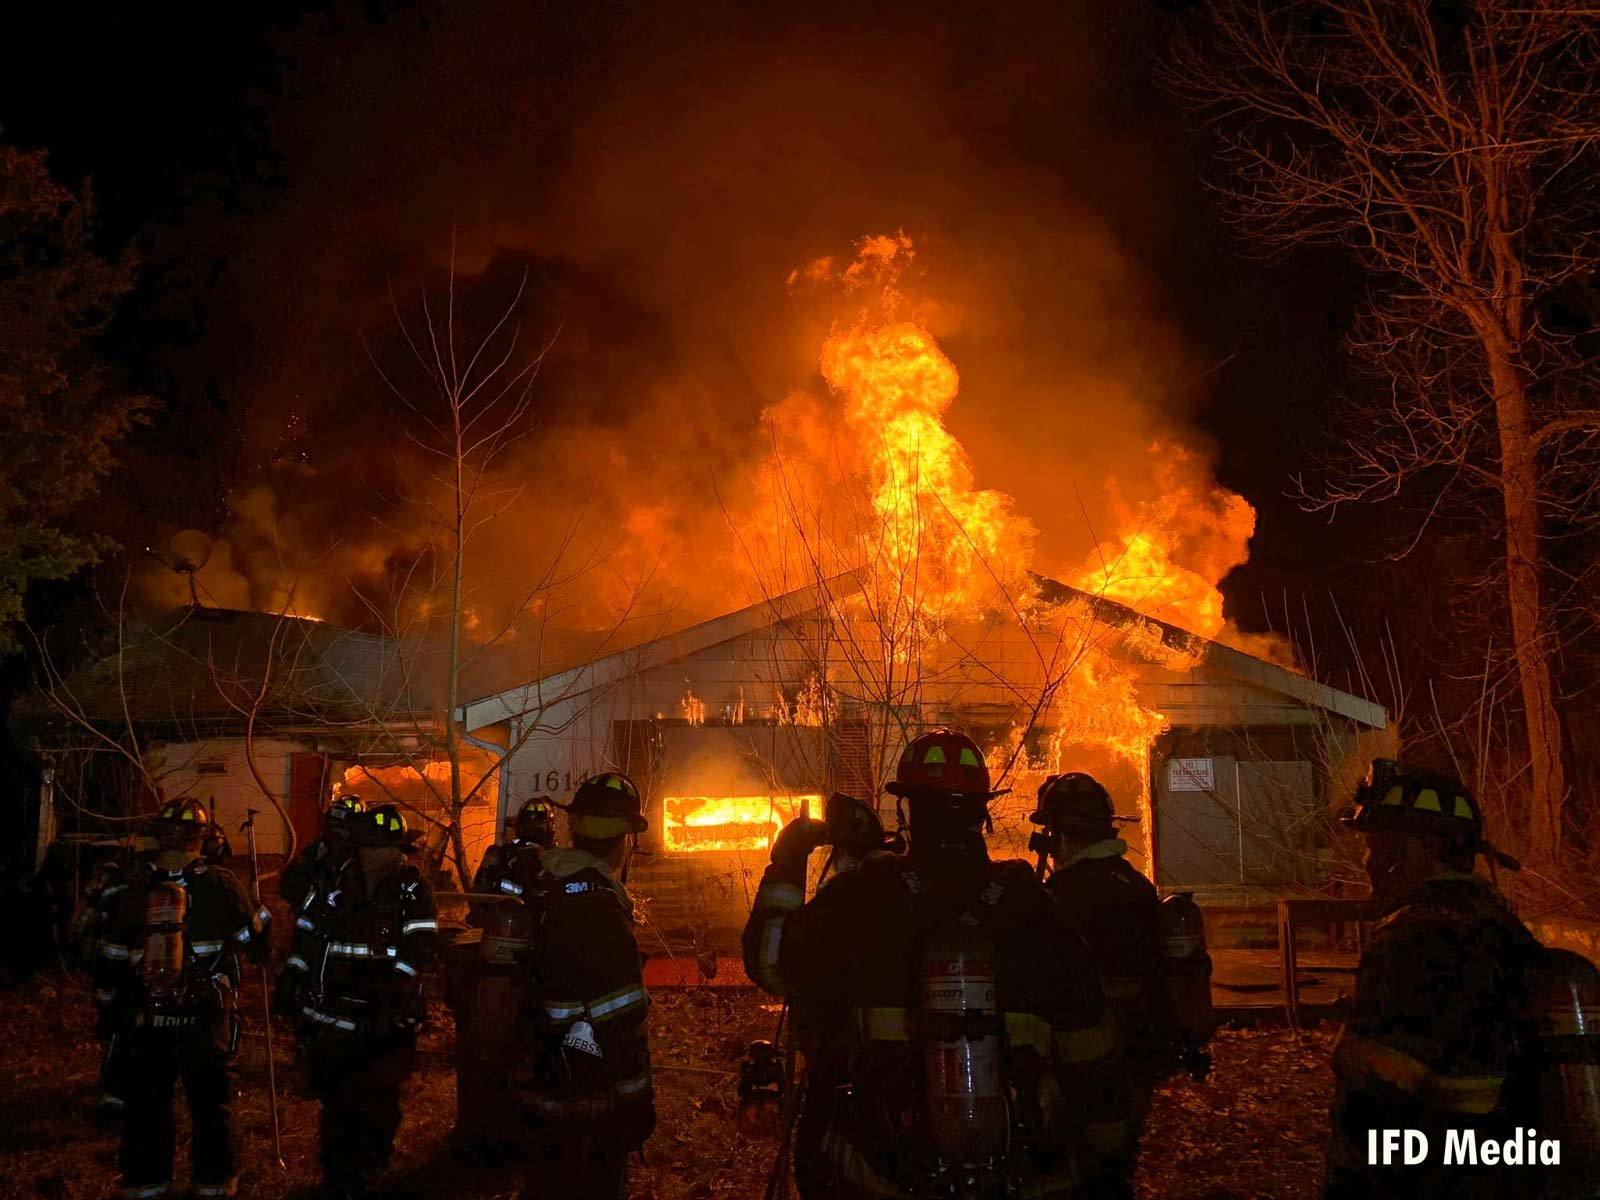 Indianapolis Fire Department crews at the dwelling fire